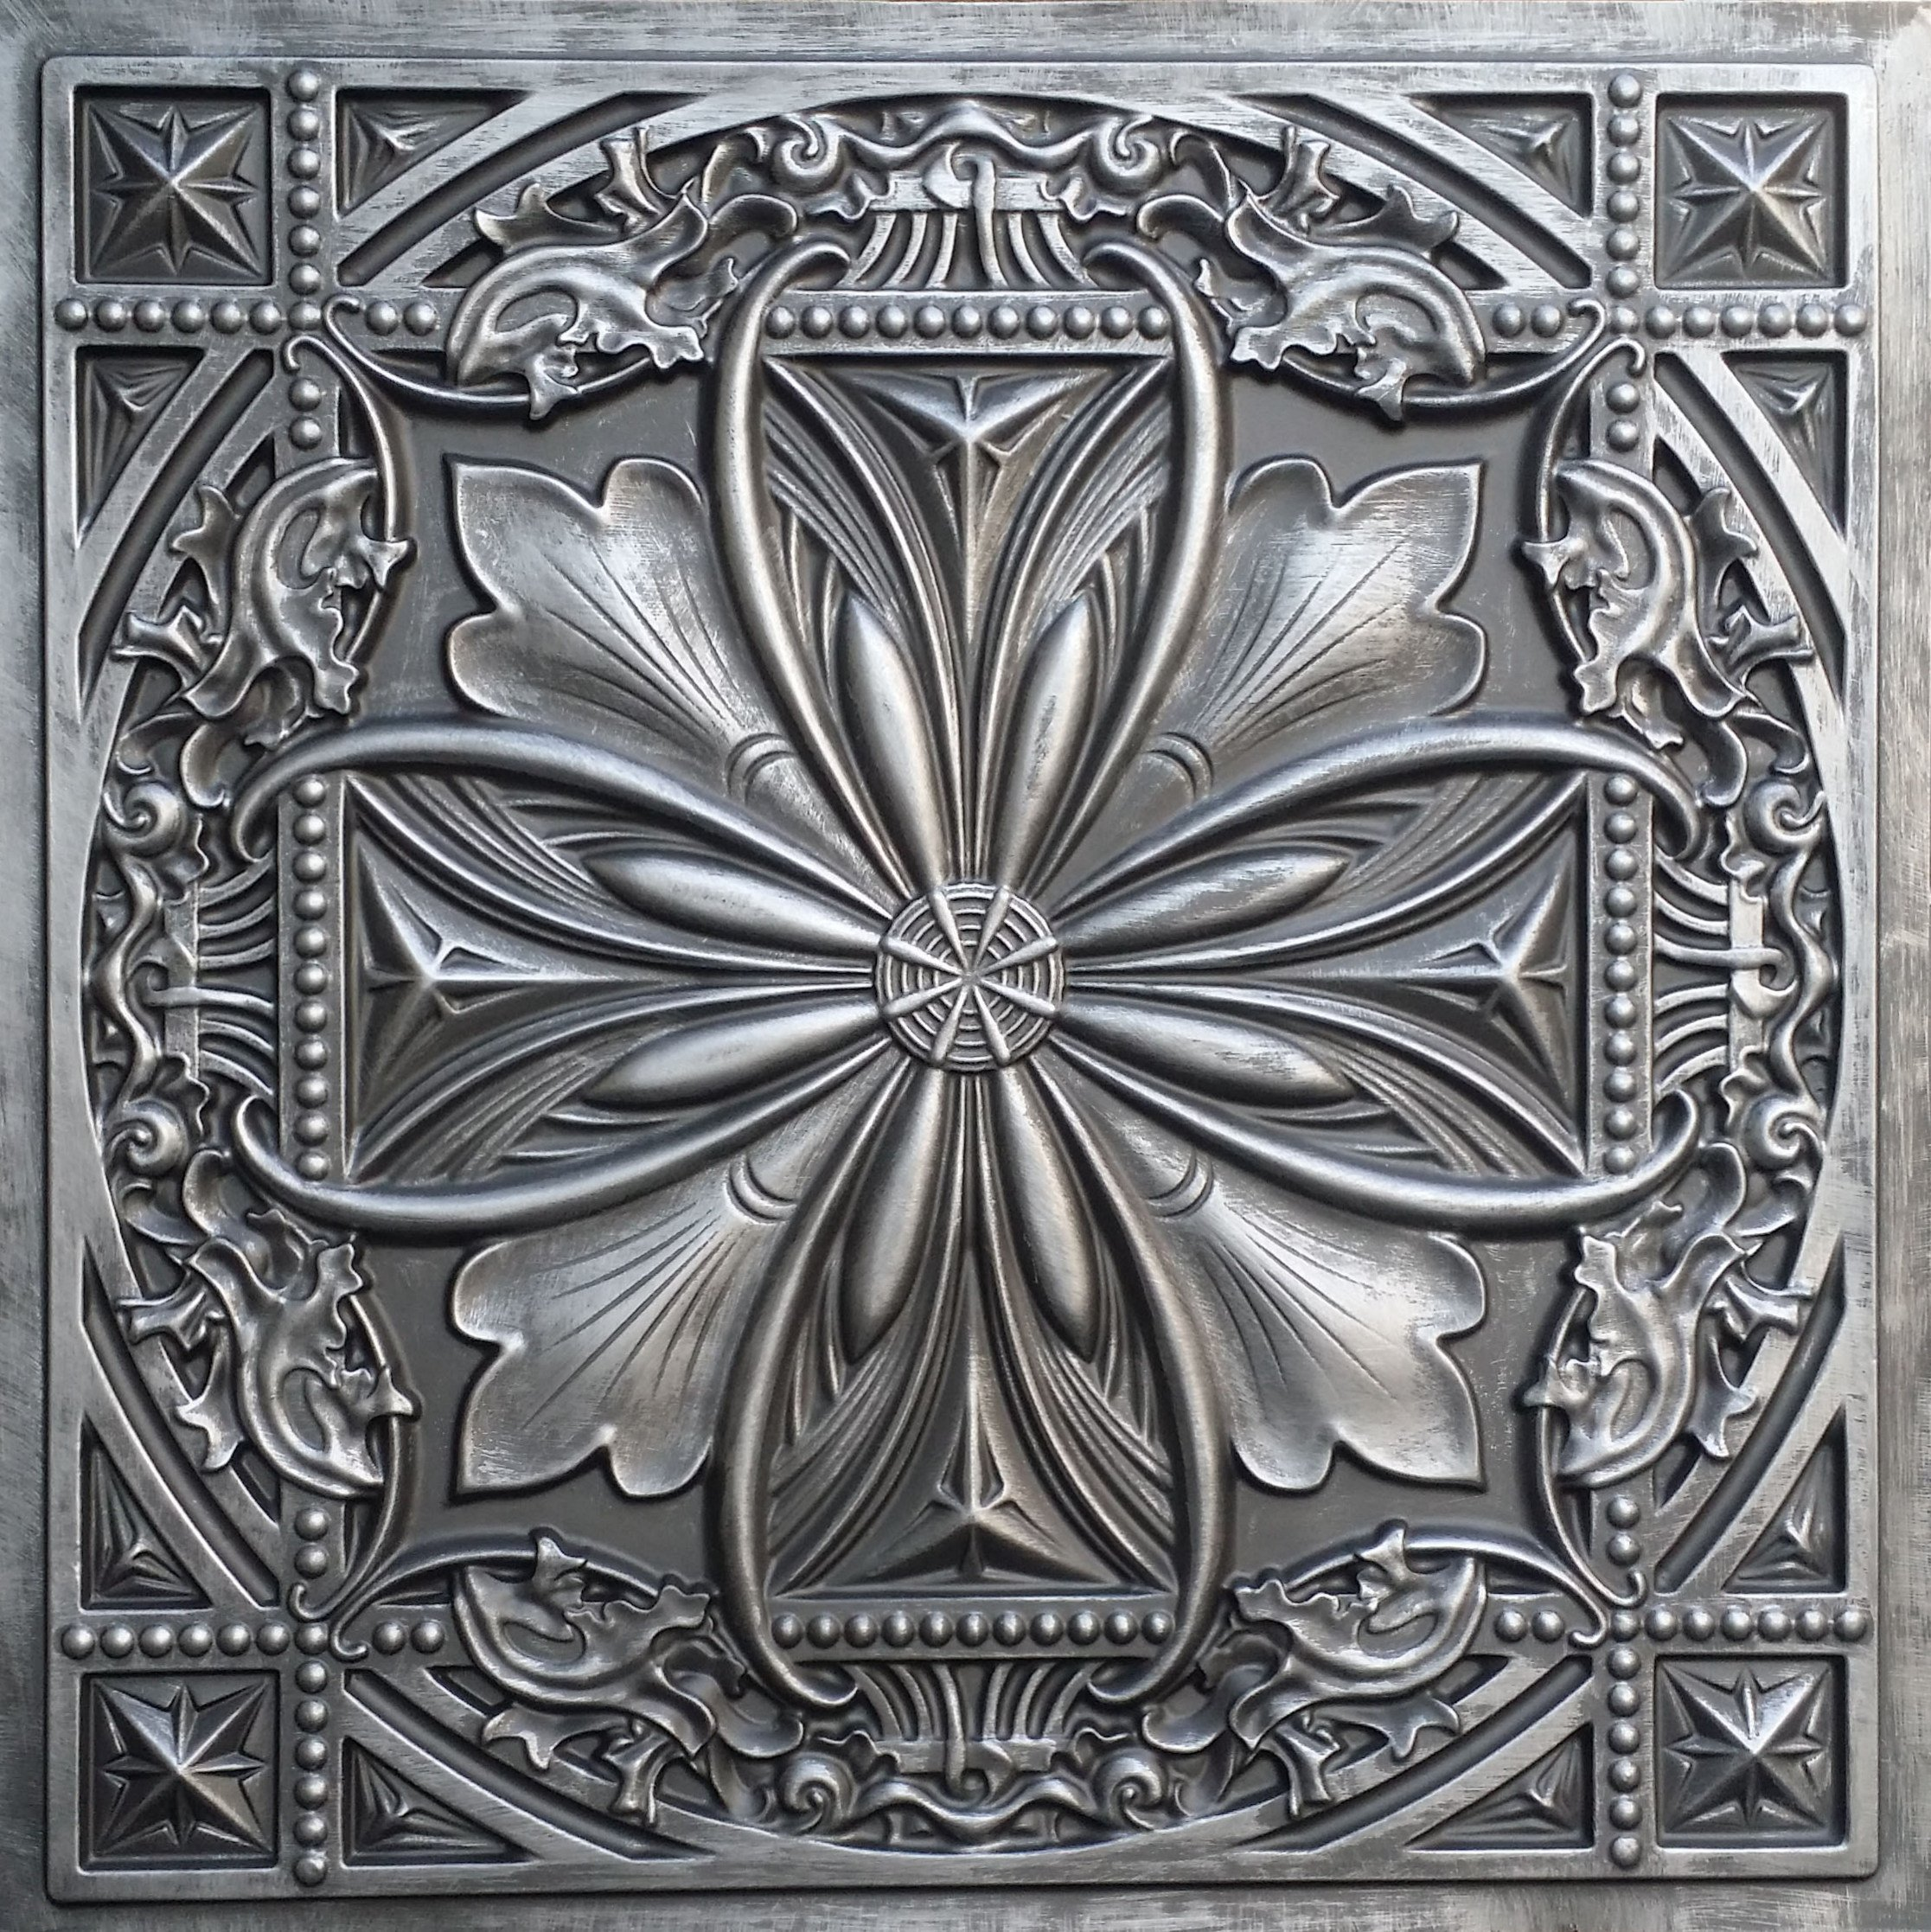 TalissaDecor Faux Tin Glue up/Drop in Ceiling Tile TD10 Aged Silver Pack of 10 2'X2' Tiles (~ 40 sq.ft). Easy to Install PVC Panels. Gorgeous Antique Vintage Look Ceiling. Great for DIY Backdrop.